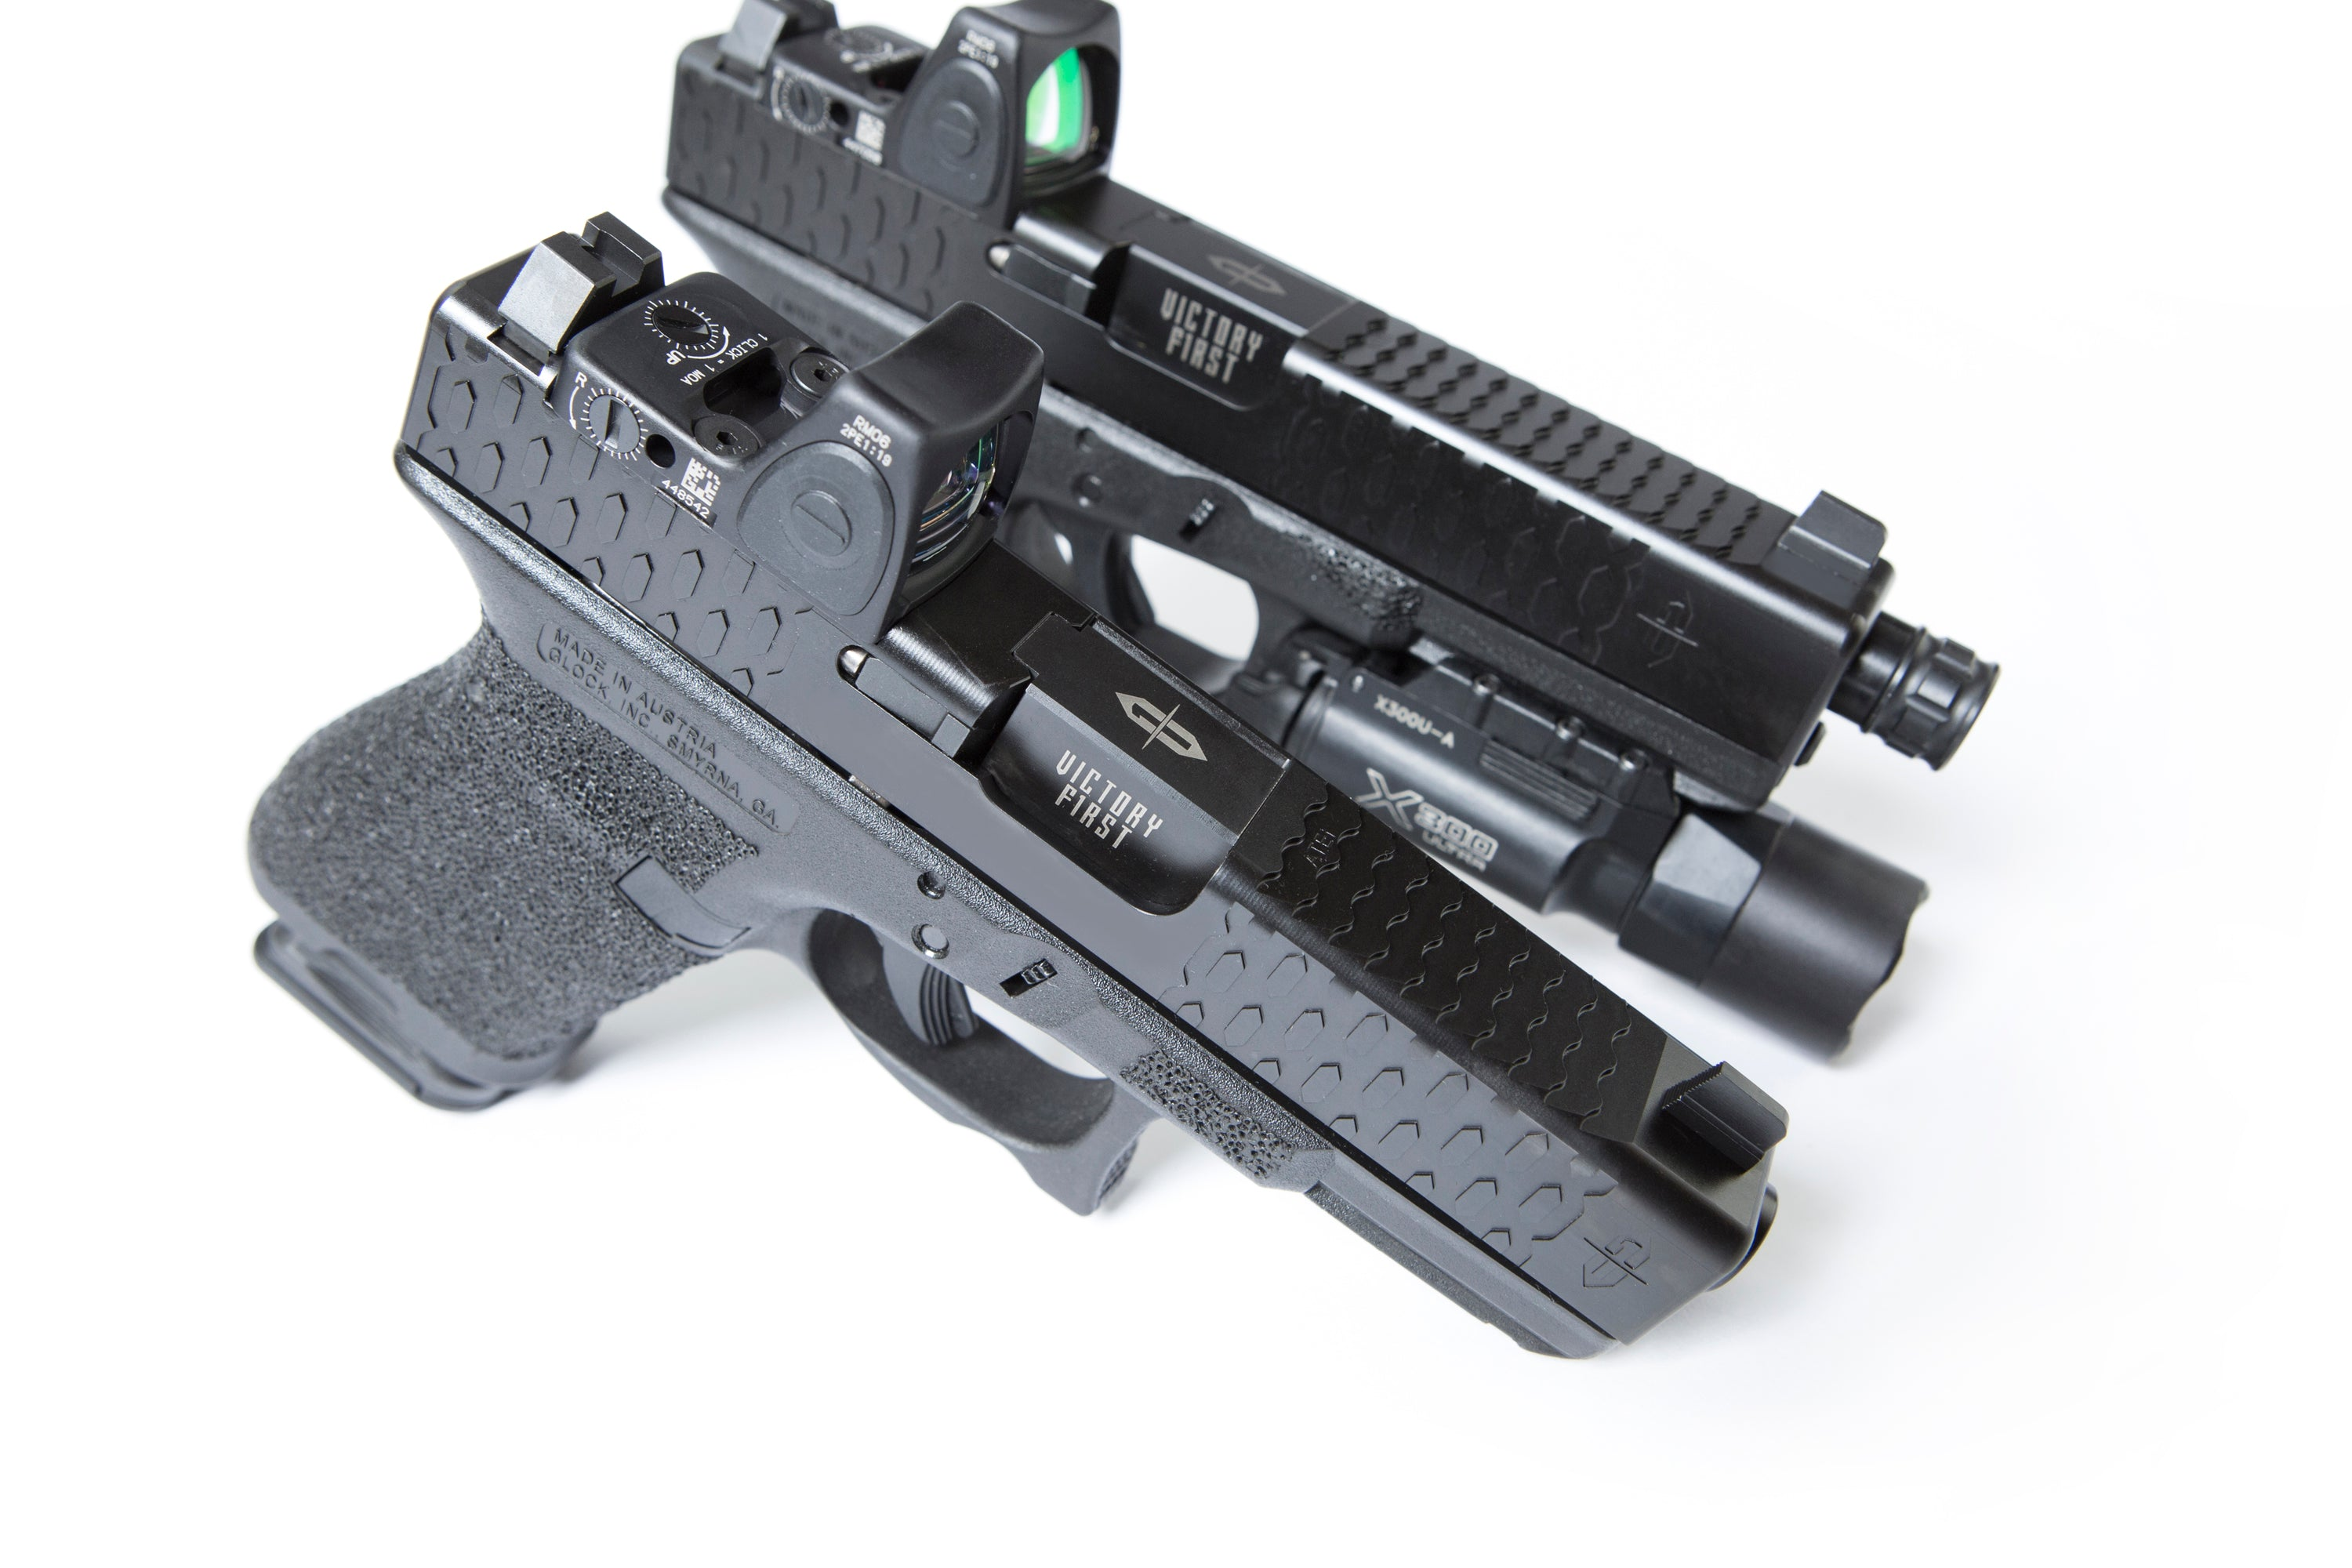 Victory First / ATEi Complete match Glock slide